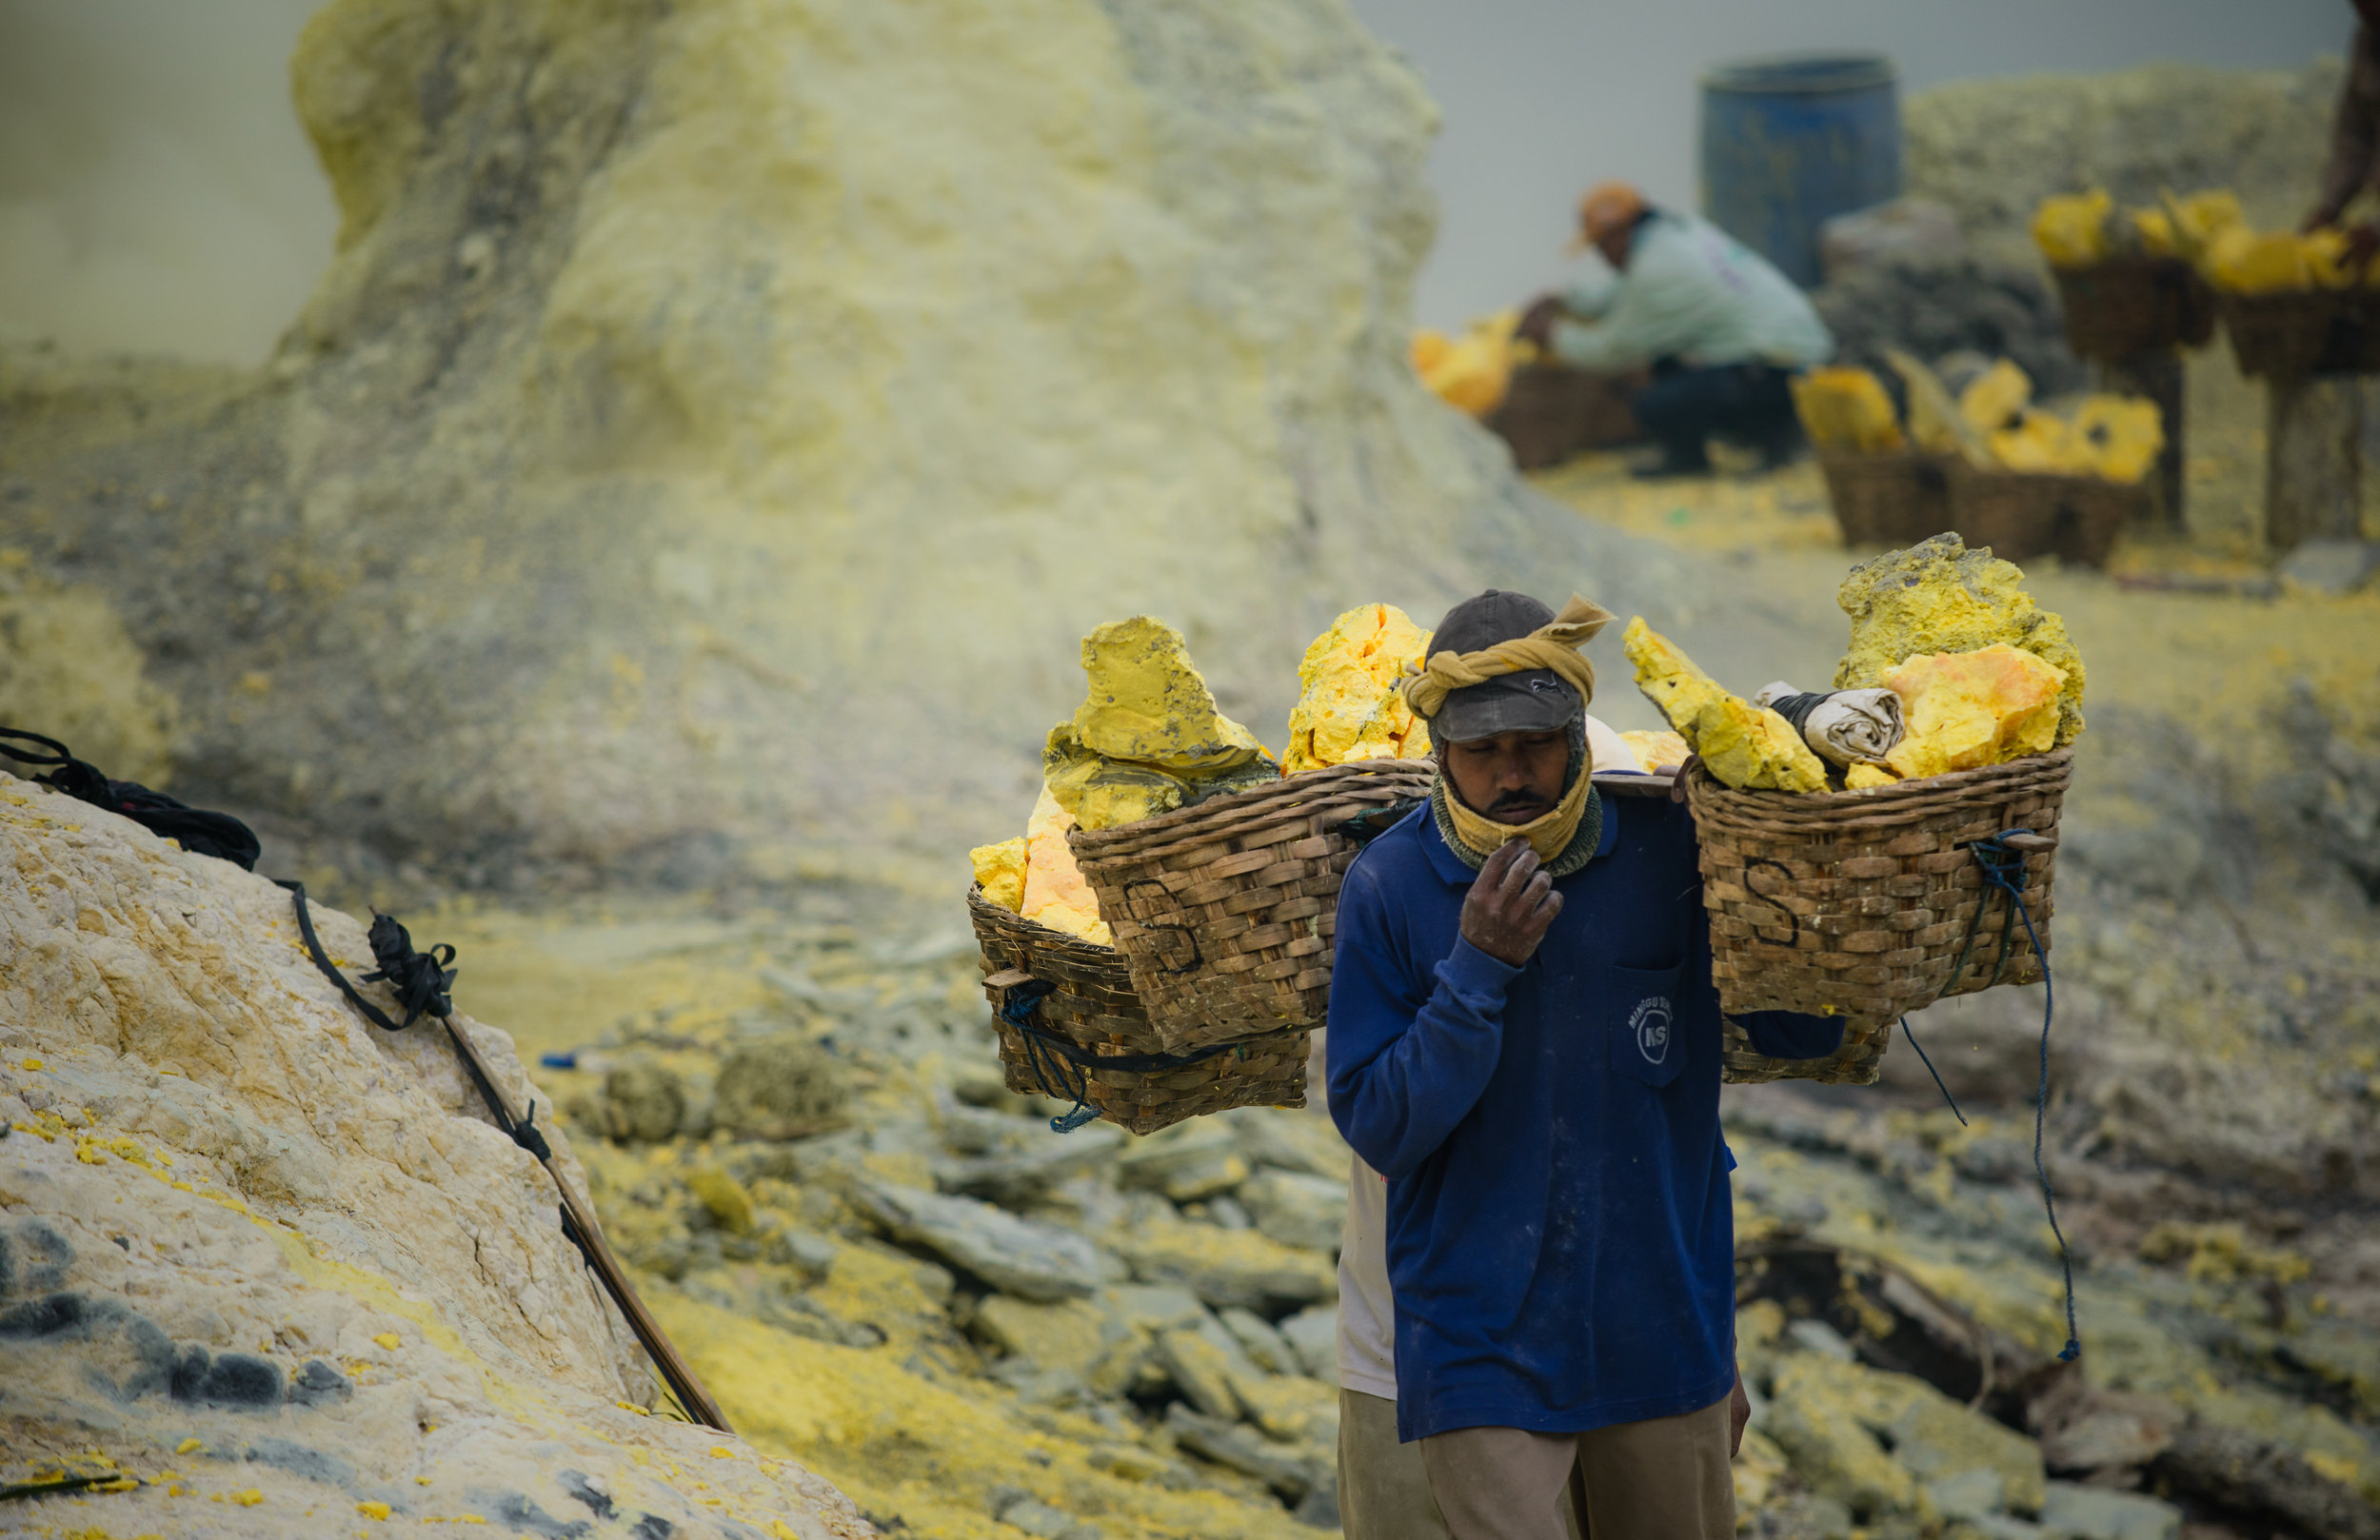 Into the lungs of hell - Human beings go to great lengths to make a living. The miners of Kawah Ijen climb up and down the crater of the active volcano several times a day to dig out sulphur. They breath in its lung-burning fumes and they load up to 90kg of sulphur into the baskets that they will proceed to carry on their shoulders all the way back to the delivery spot.